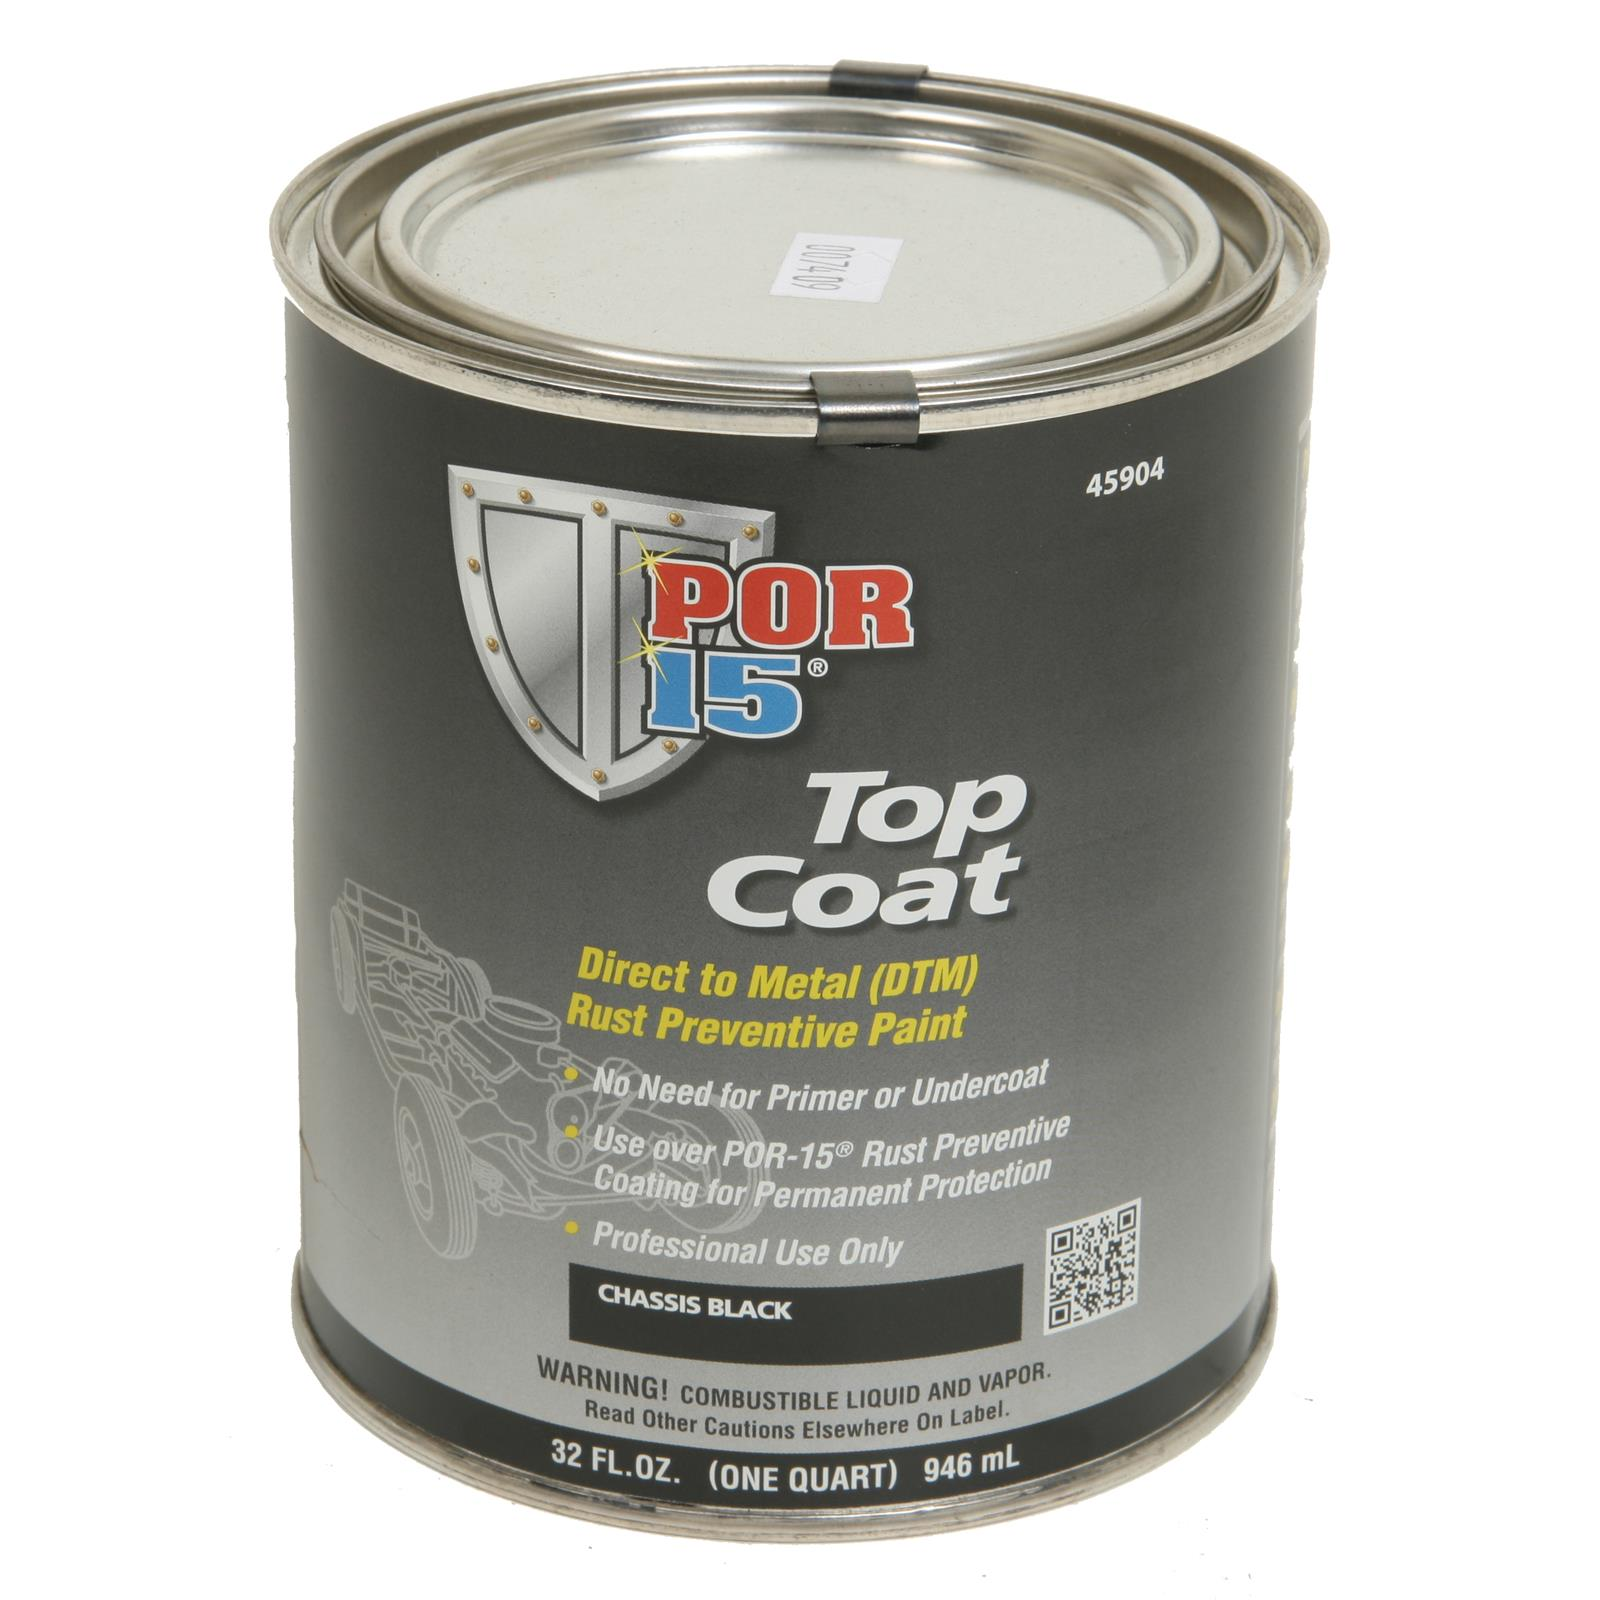 POR-15 Top Coat Paint 45904 - Free Shipping on Orders Over $99 at Summit Racing